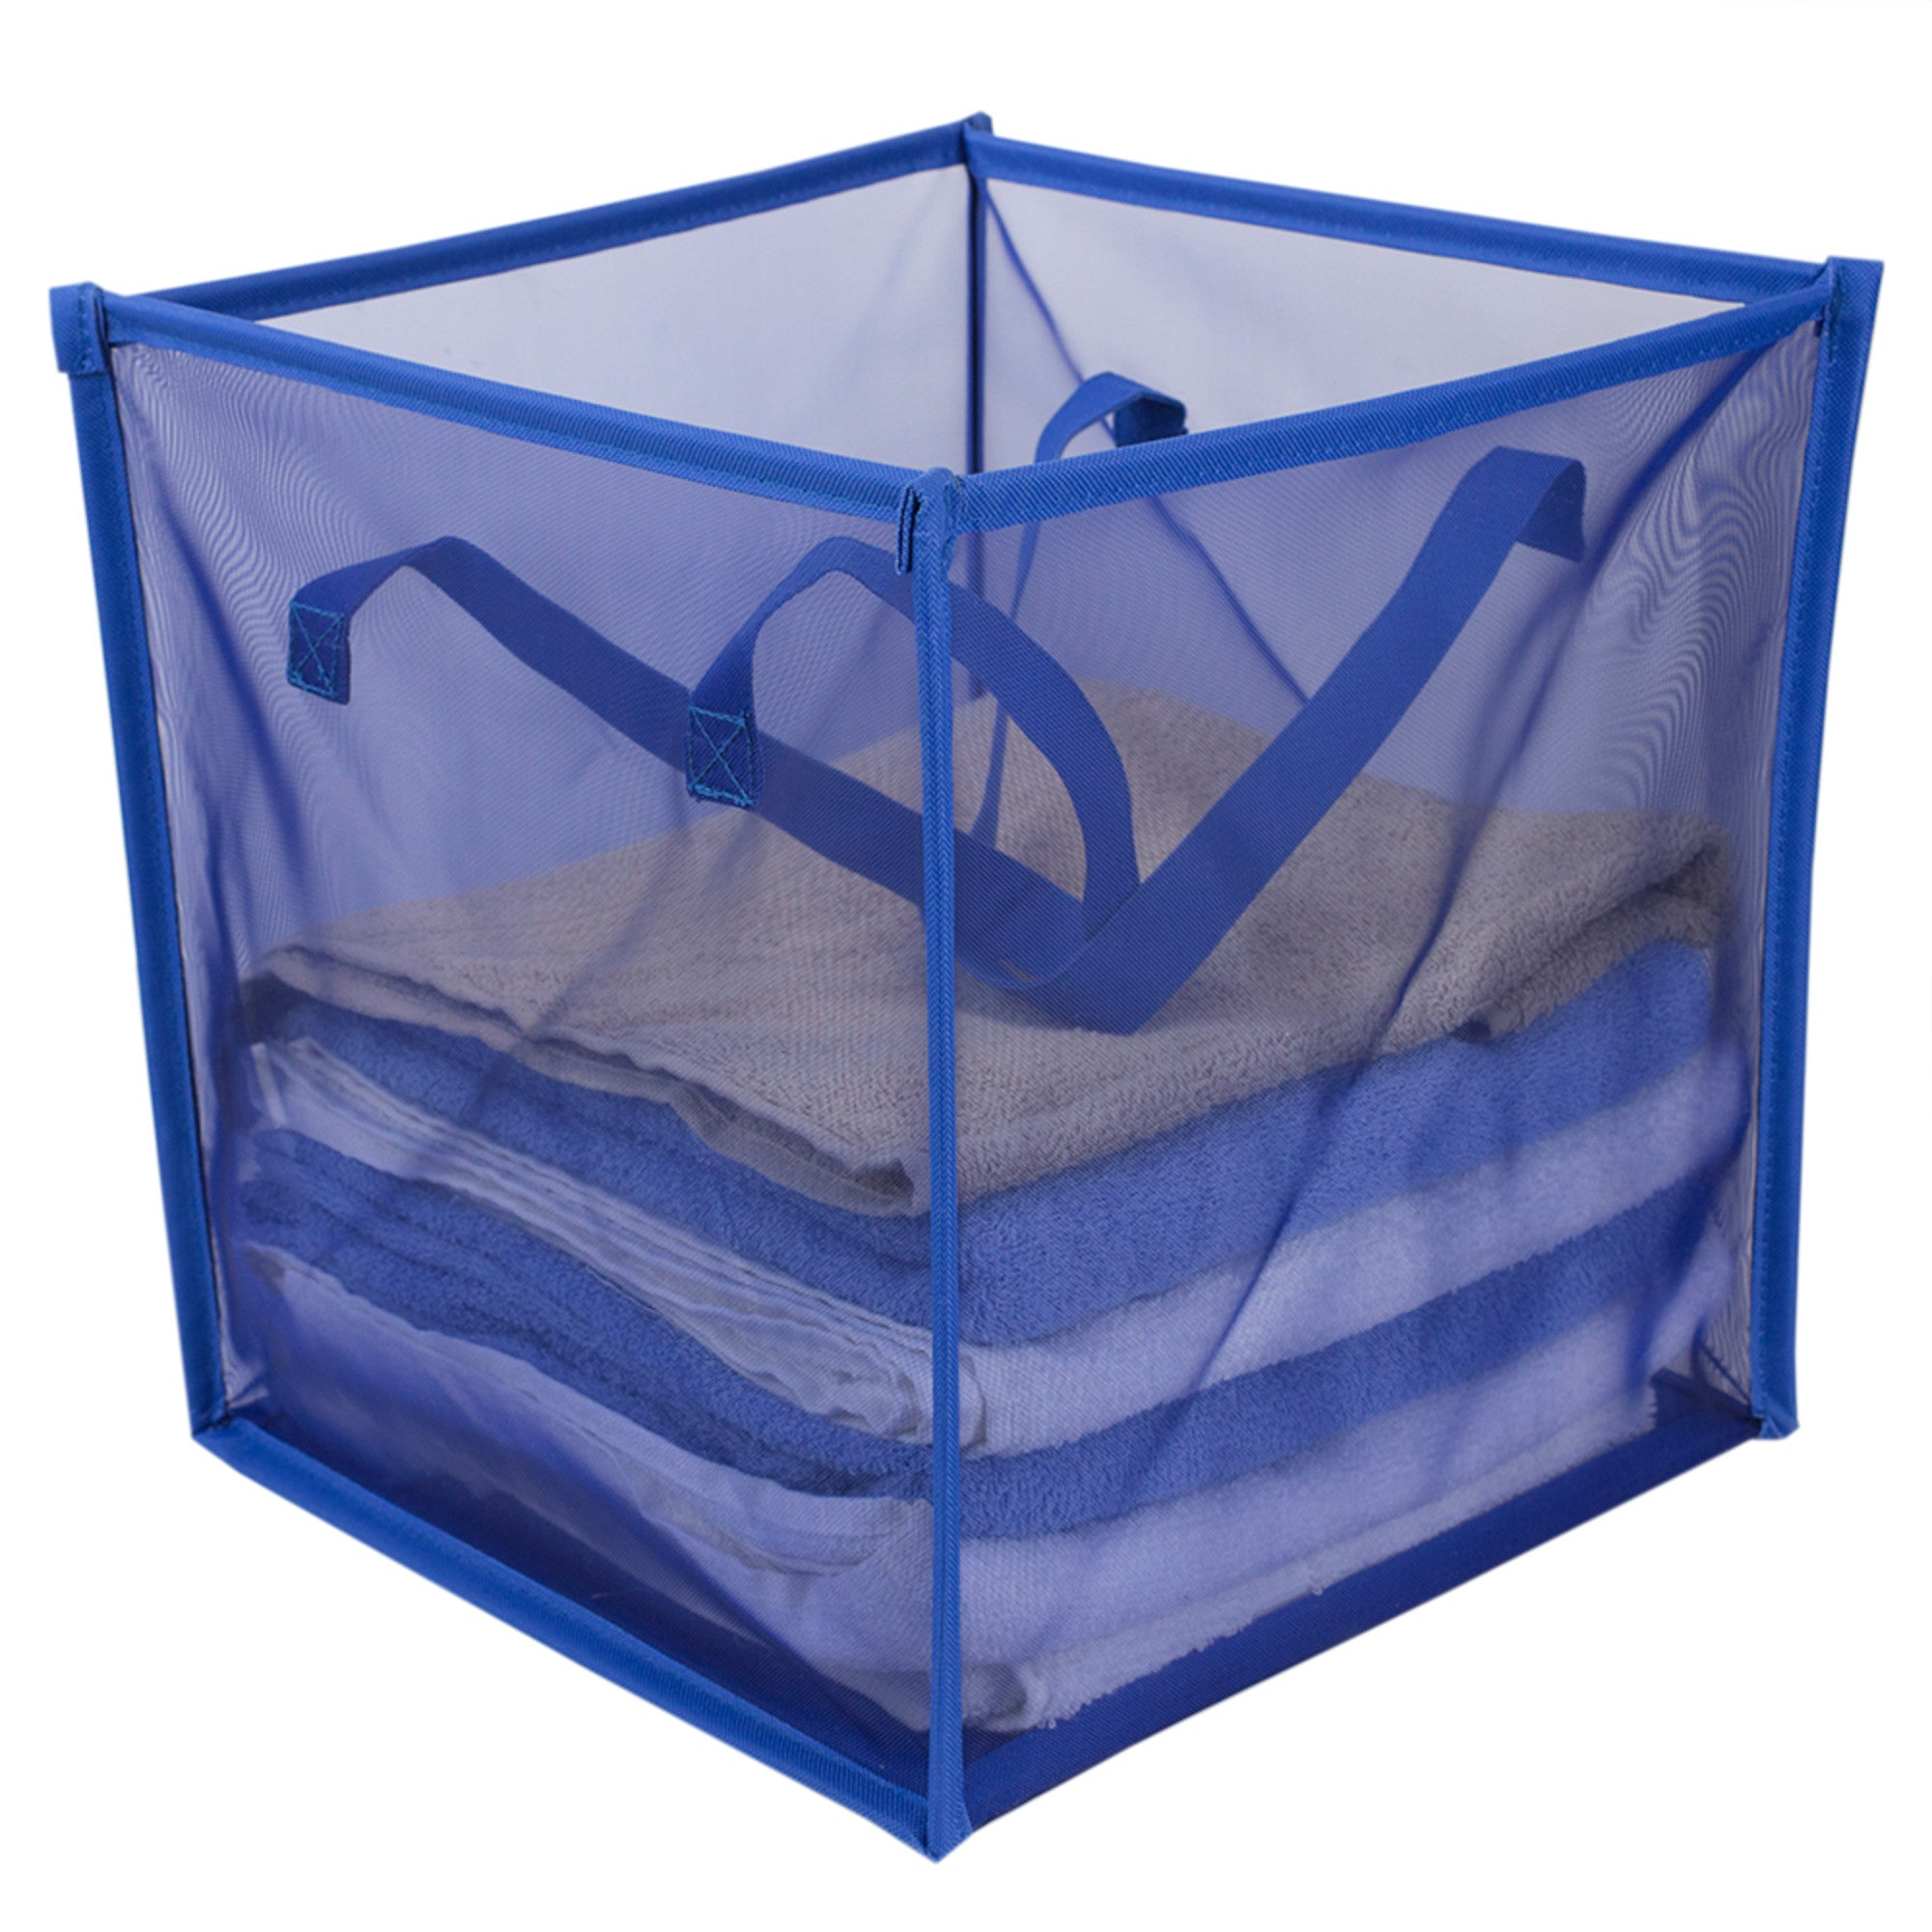 Home Basics Breathable Micro Mesh Collapsible Laundry Cube with Handles, Blue - Blue